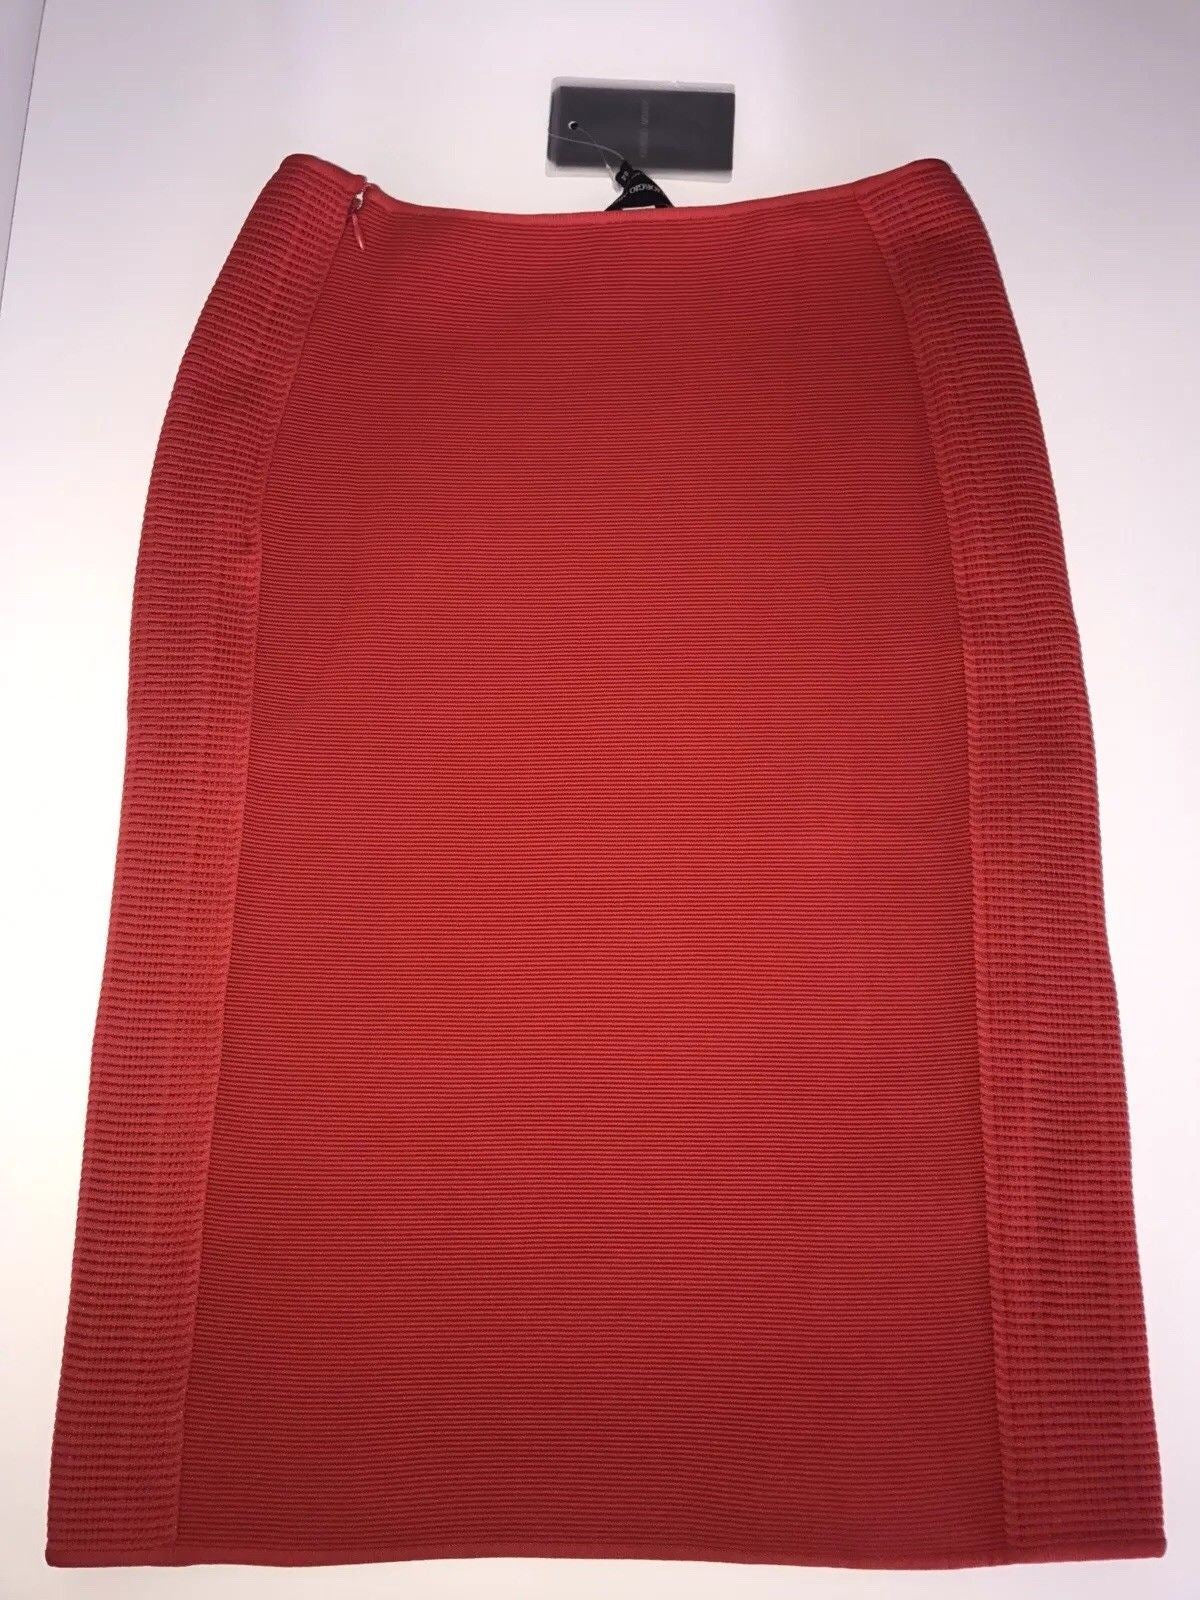 NWT $1475 Giorgio Armani Women's  Red Pencil Skirt Size 44 Made in Italy